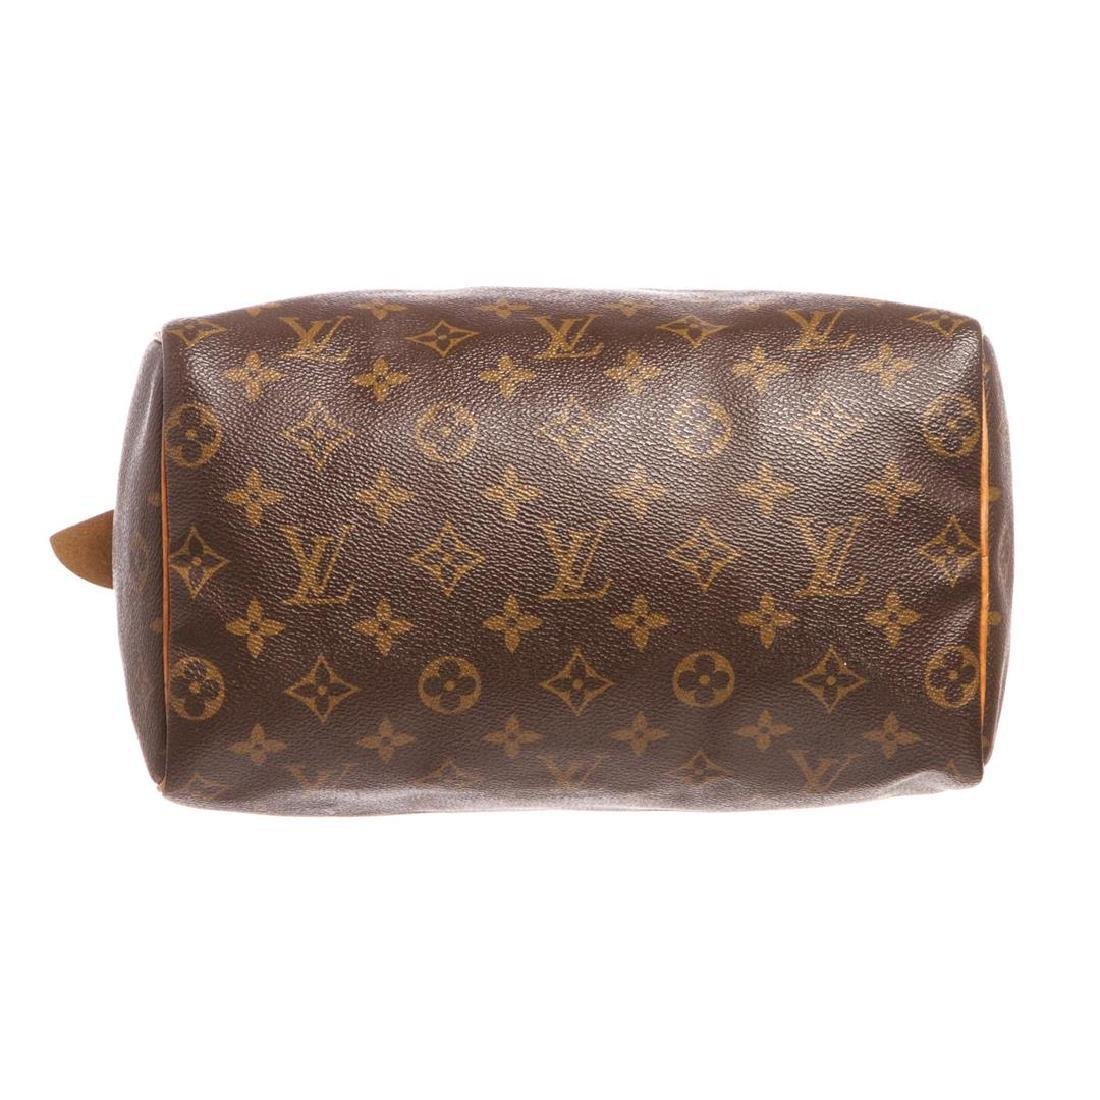 Louis Vuitton Monogram Canvas Leather Speedy 25 cm Bag - 4